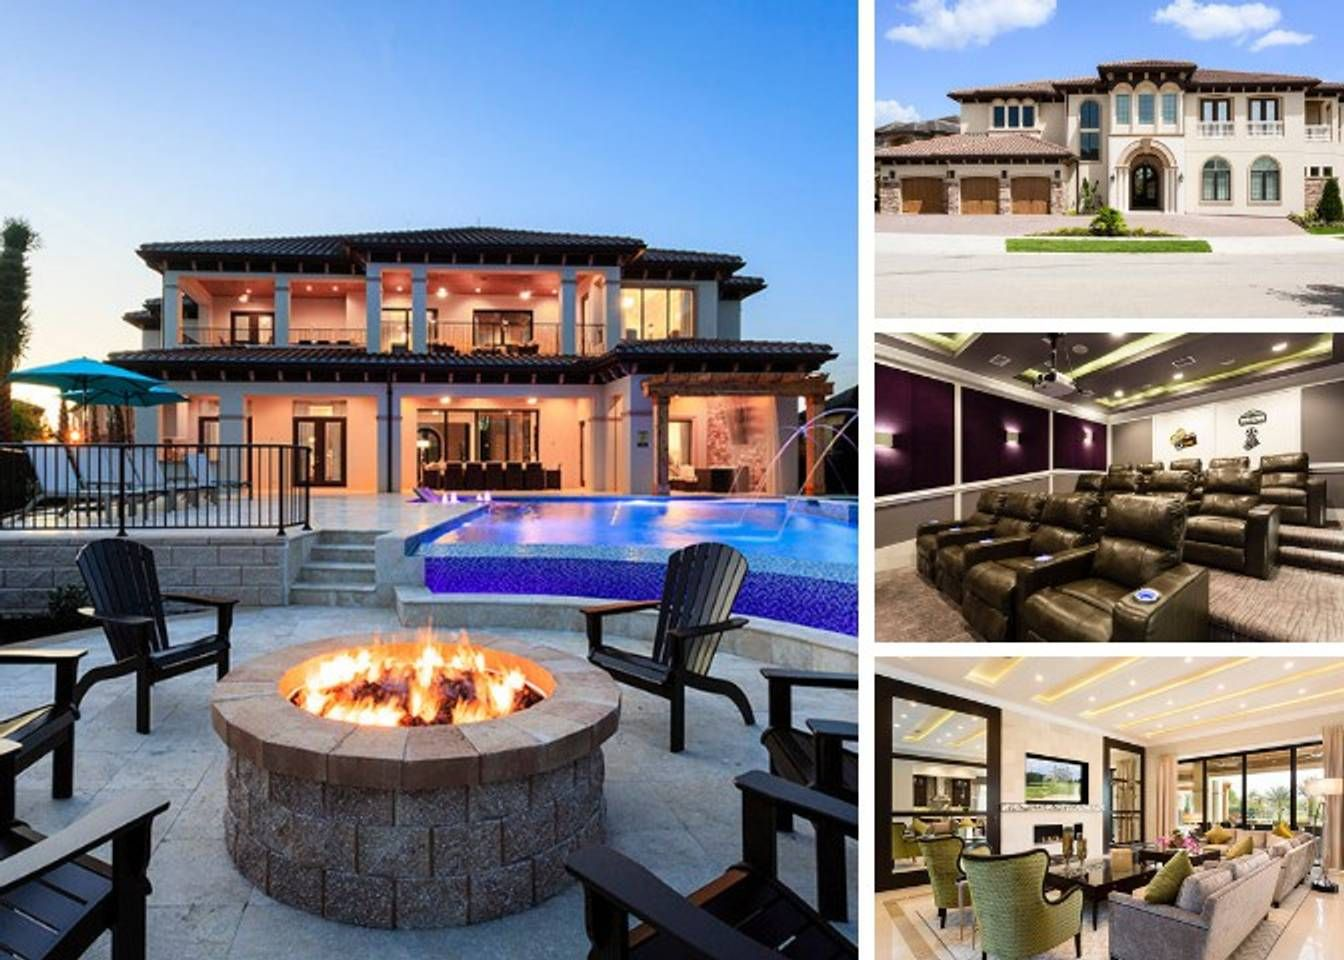 W207 Reunion Resort Mansion With 8 Bedrooms Villas For Rent In Kissimmee Florida United States Dream House Drawing Mansions Renting A House